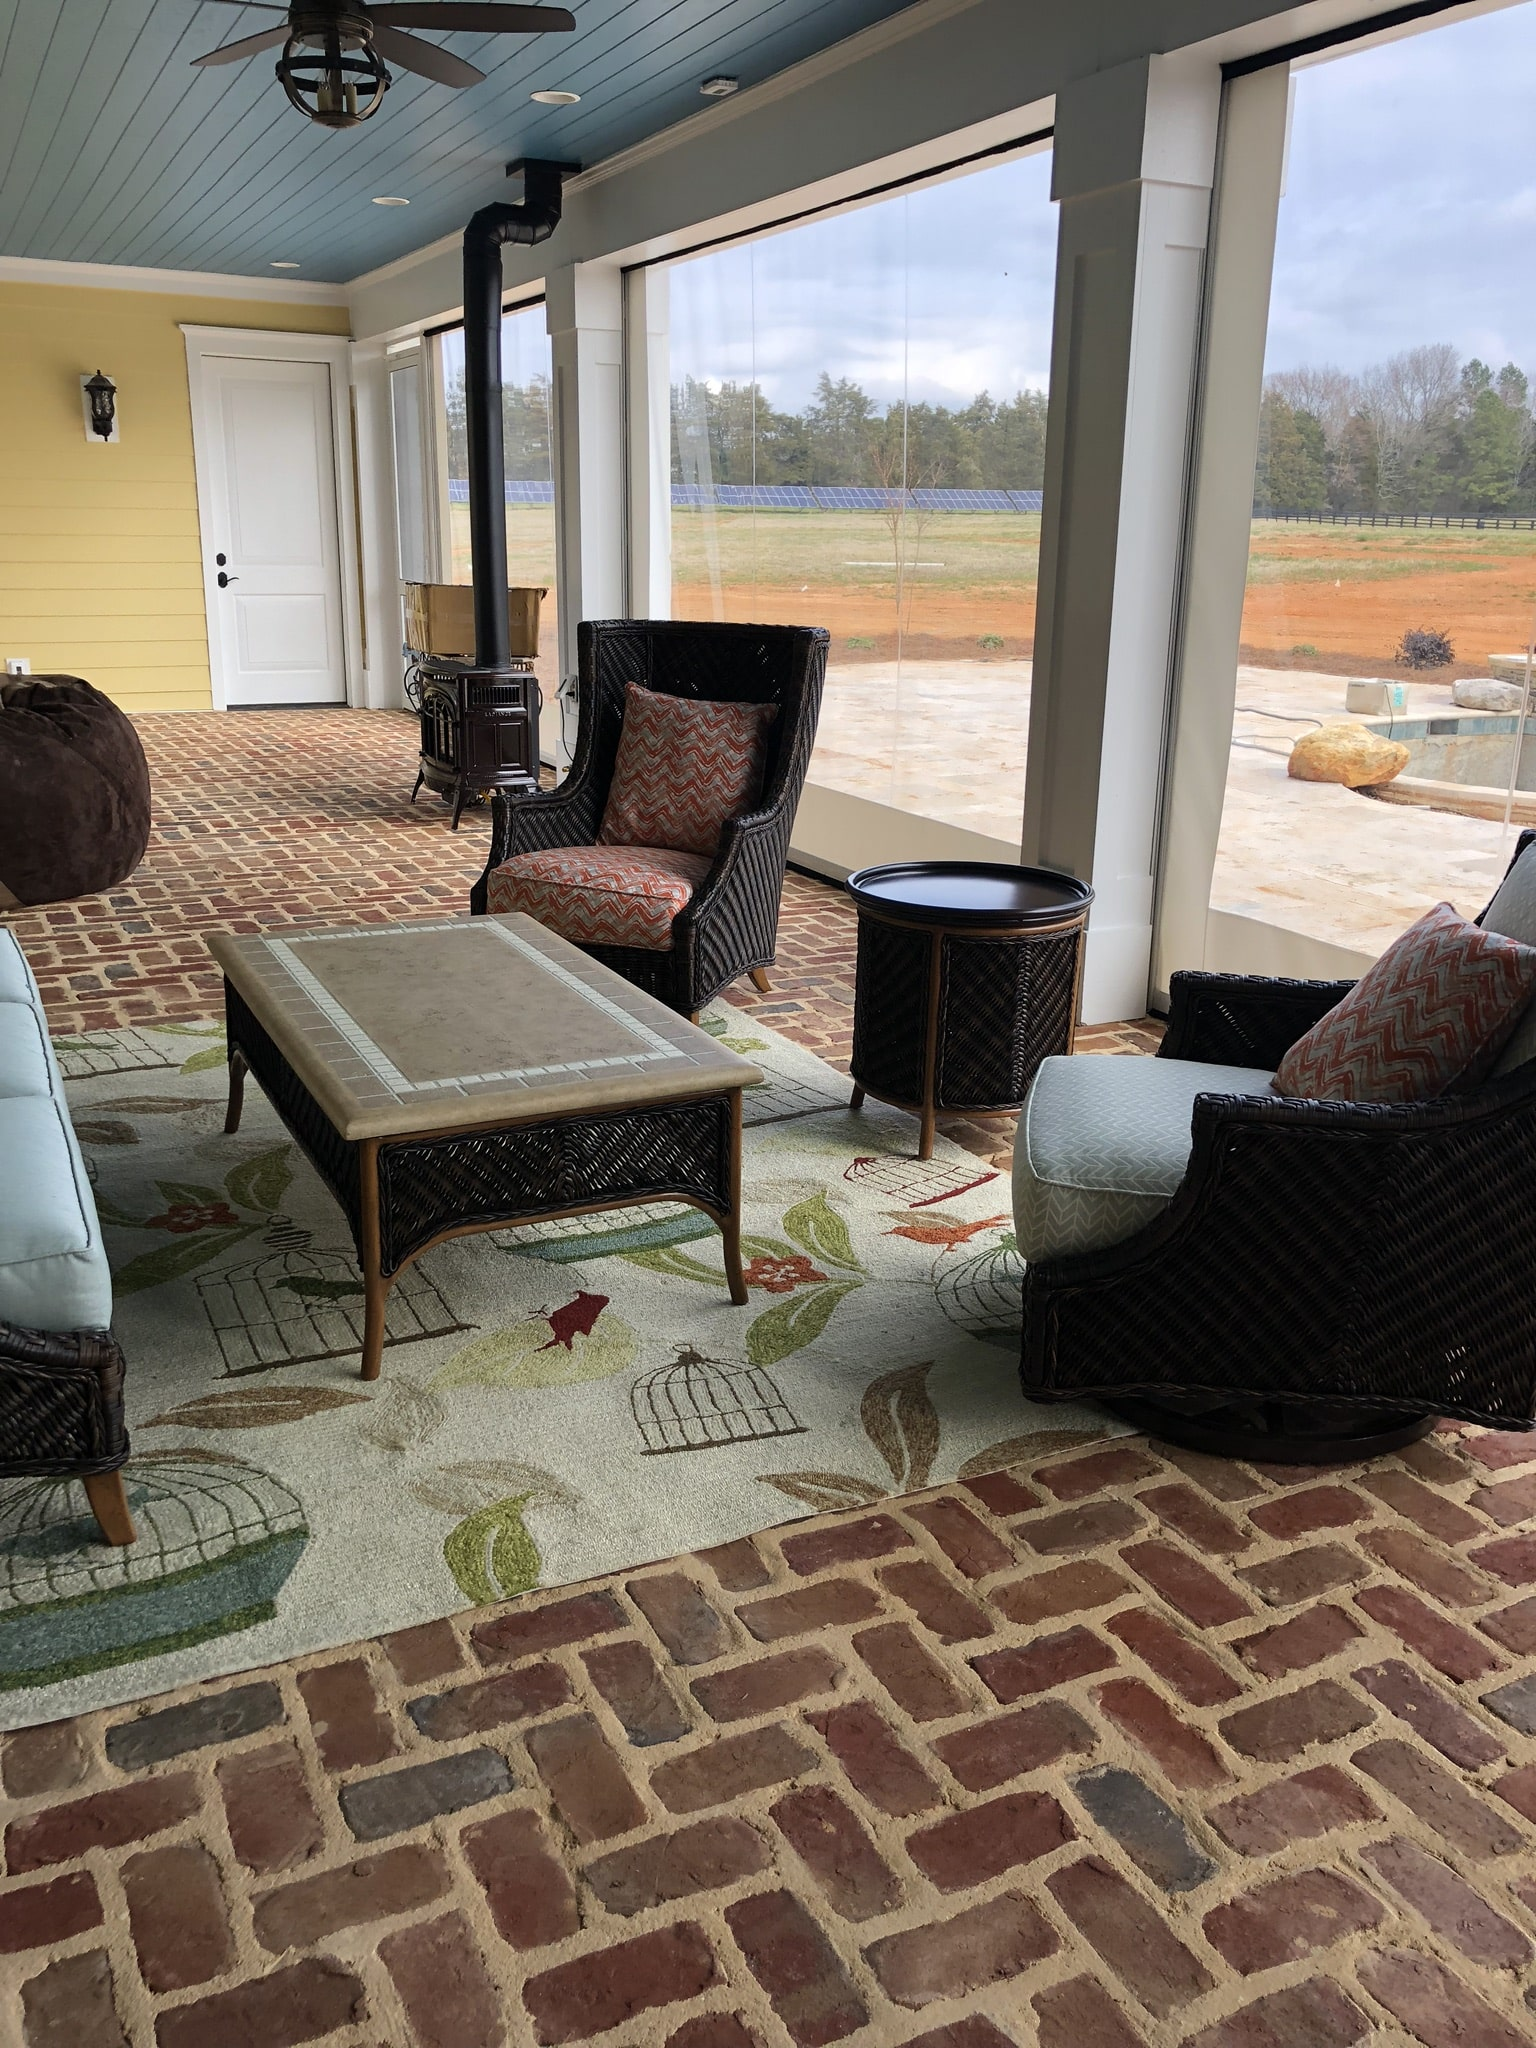 Screen porch with brick paver flooring.